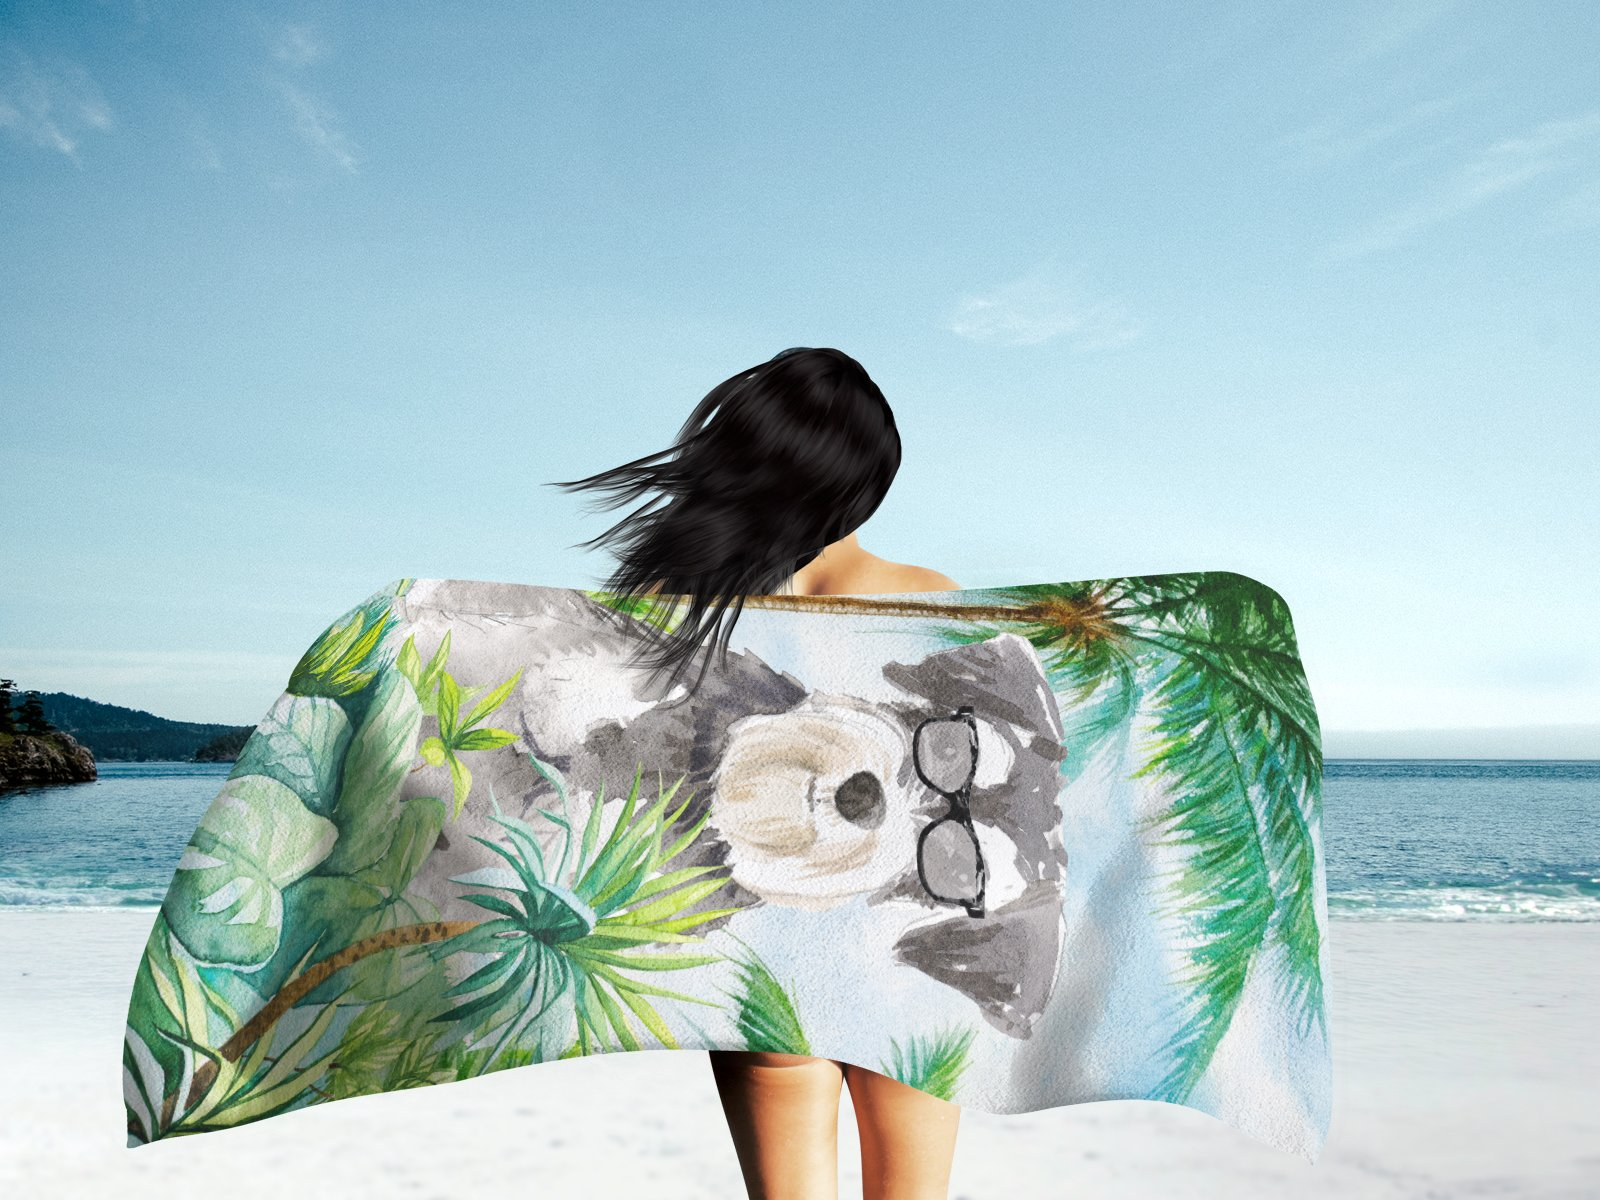 Schnauzer #2 Premium Beach Towel CK3006TWL3060 by Caroline's Treasures